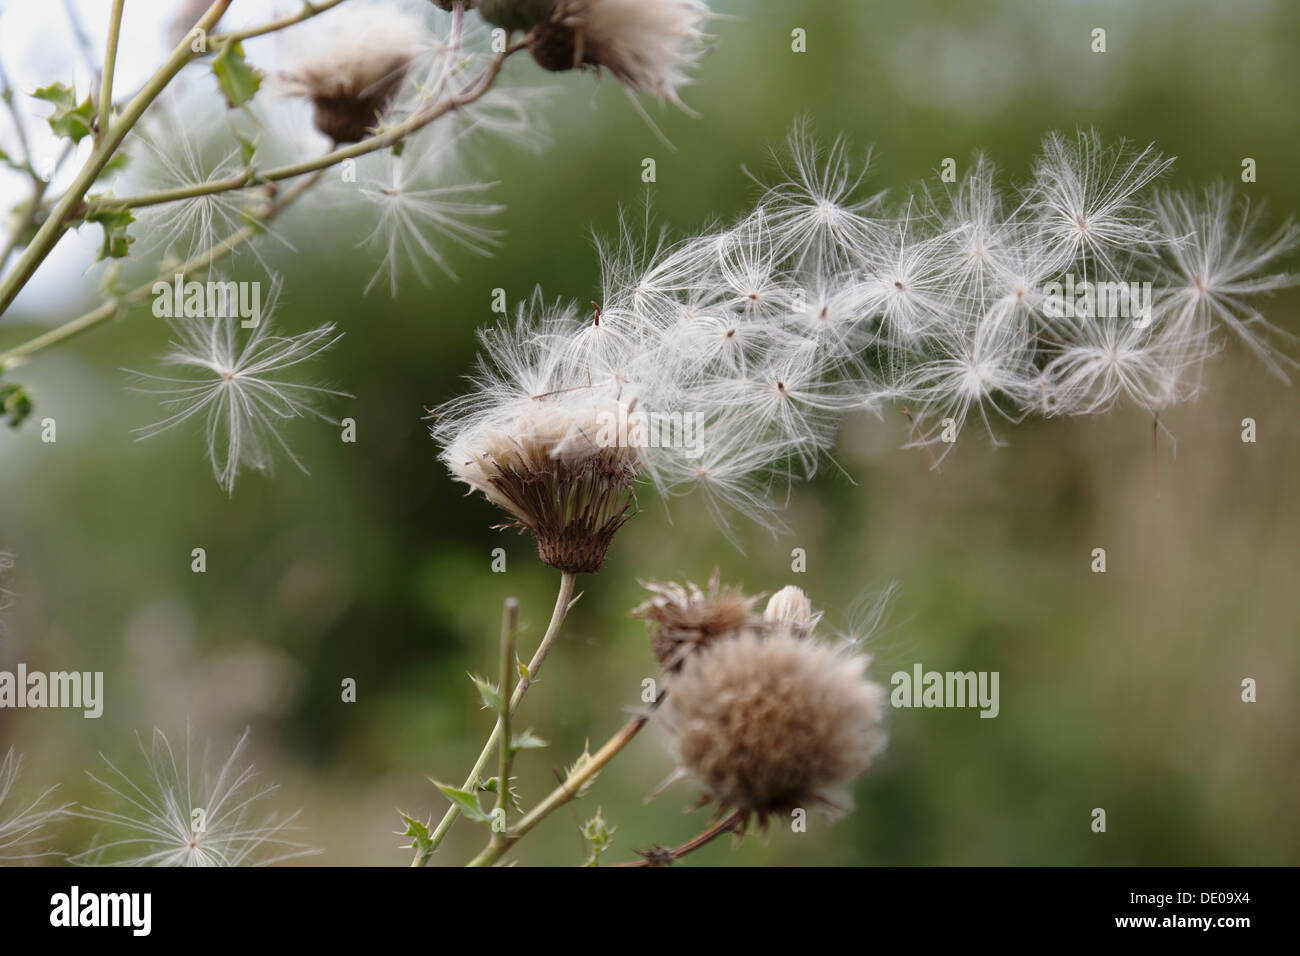 Wild flower seeds blowing in the wind, Scotland, UK - Stock Image